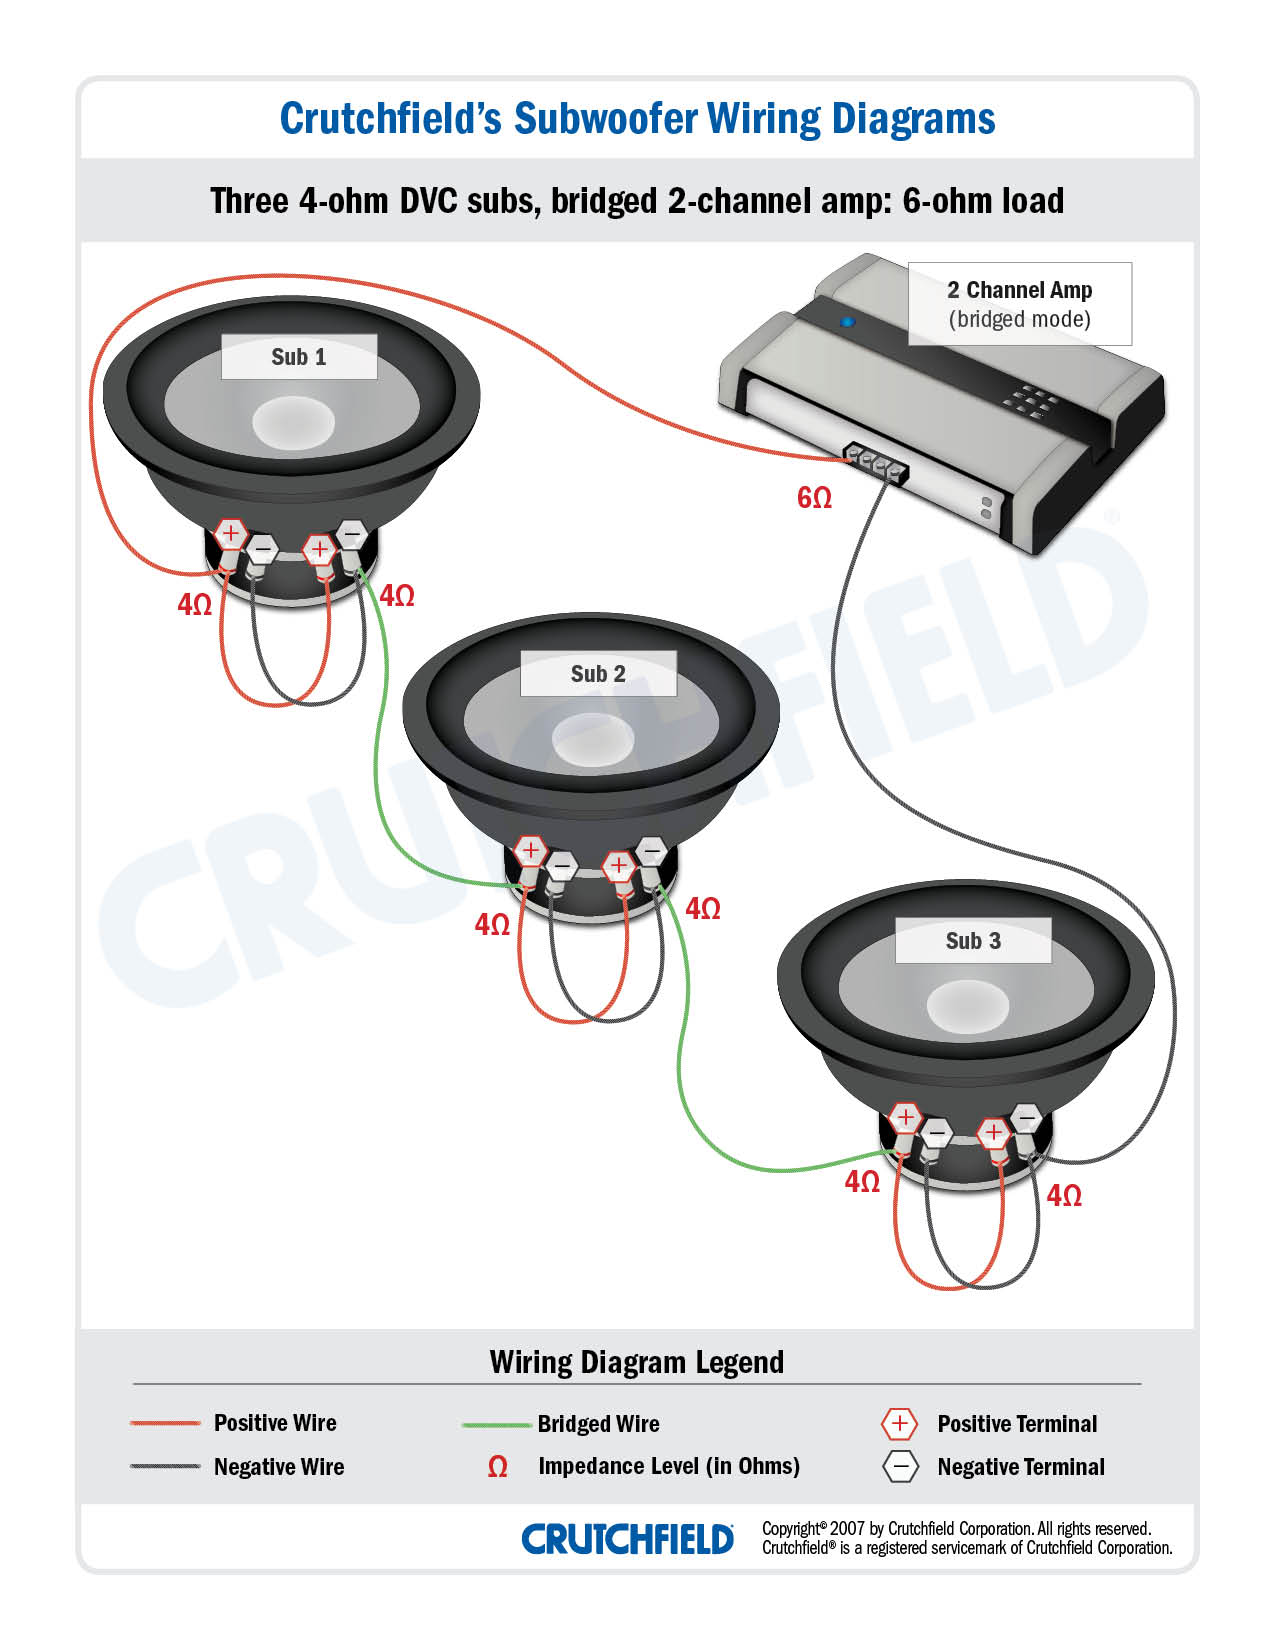 3 DVC 4 ohm 2 ch subwoofer wiring diagrams kicker solo baric l5 wiring diagram at mifinder.co